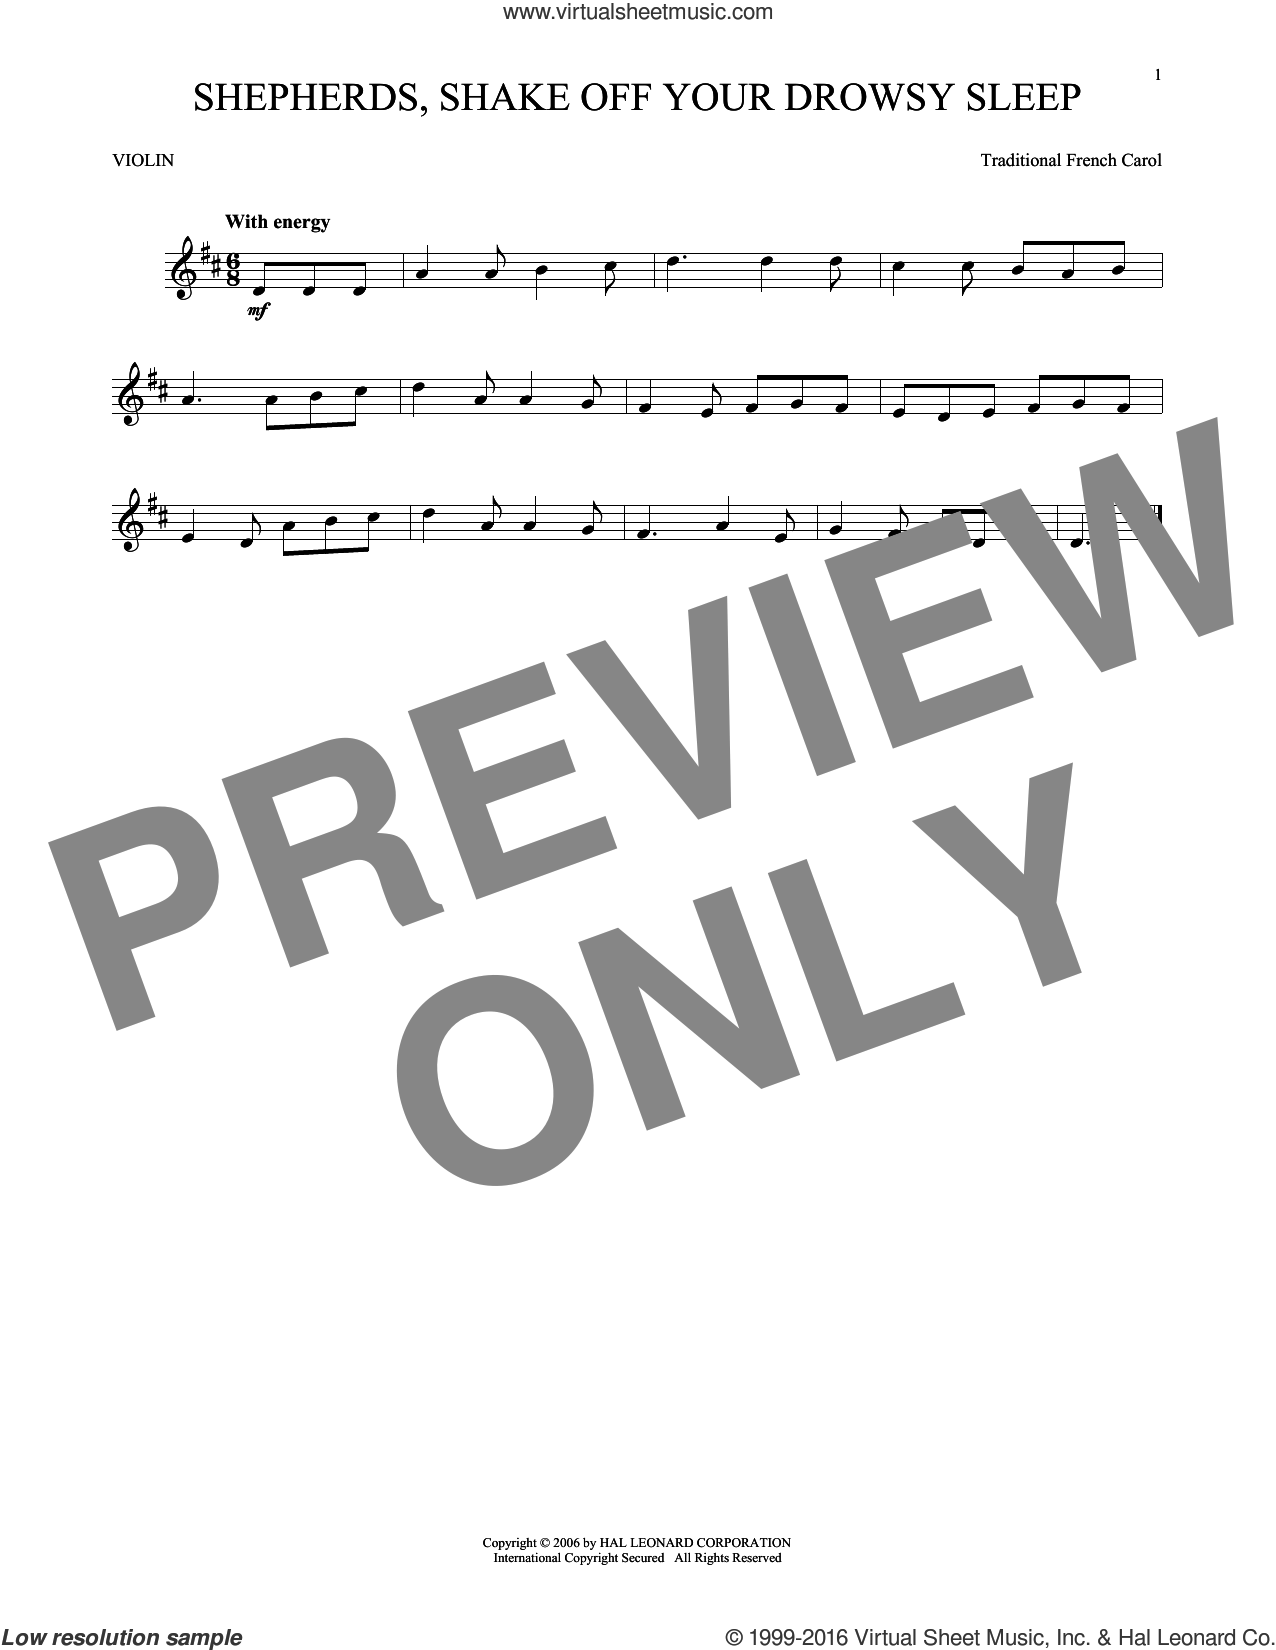 Shepherds, Shake Off Your Drowsy Sleep sheet music for violin solo. Score Image Preview.